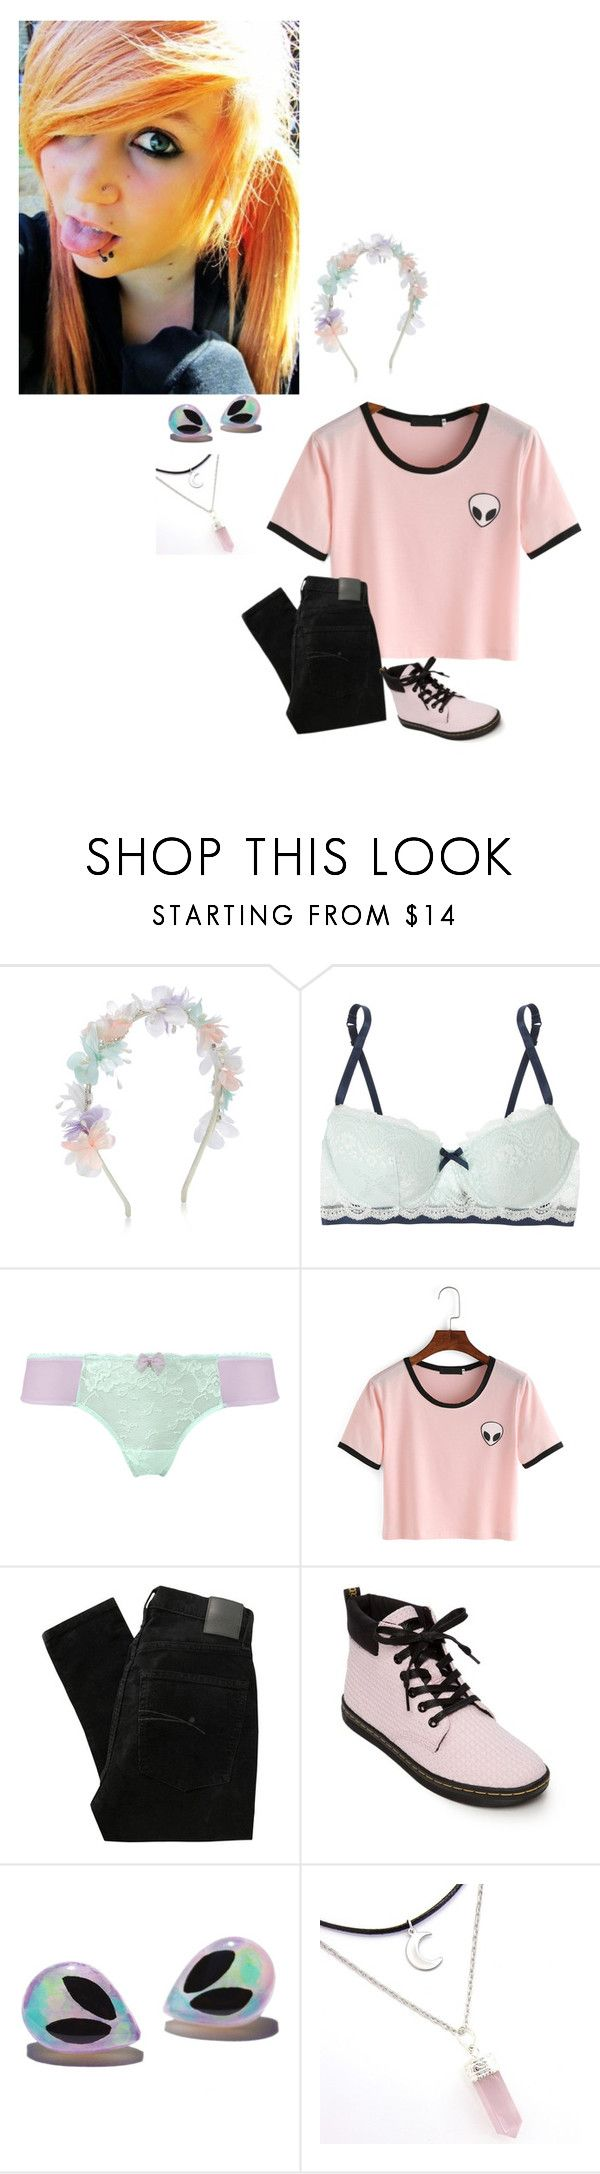 """-Carly"" by nightmaregalaxies ❤ liked on Polyvore featuring Monsoon, Elle Macpherson Intimates, Nobody Denim and Dr. Martens"